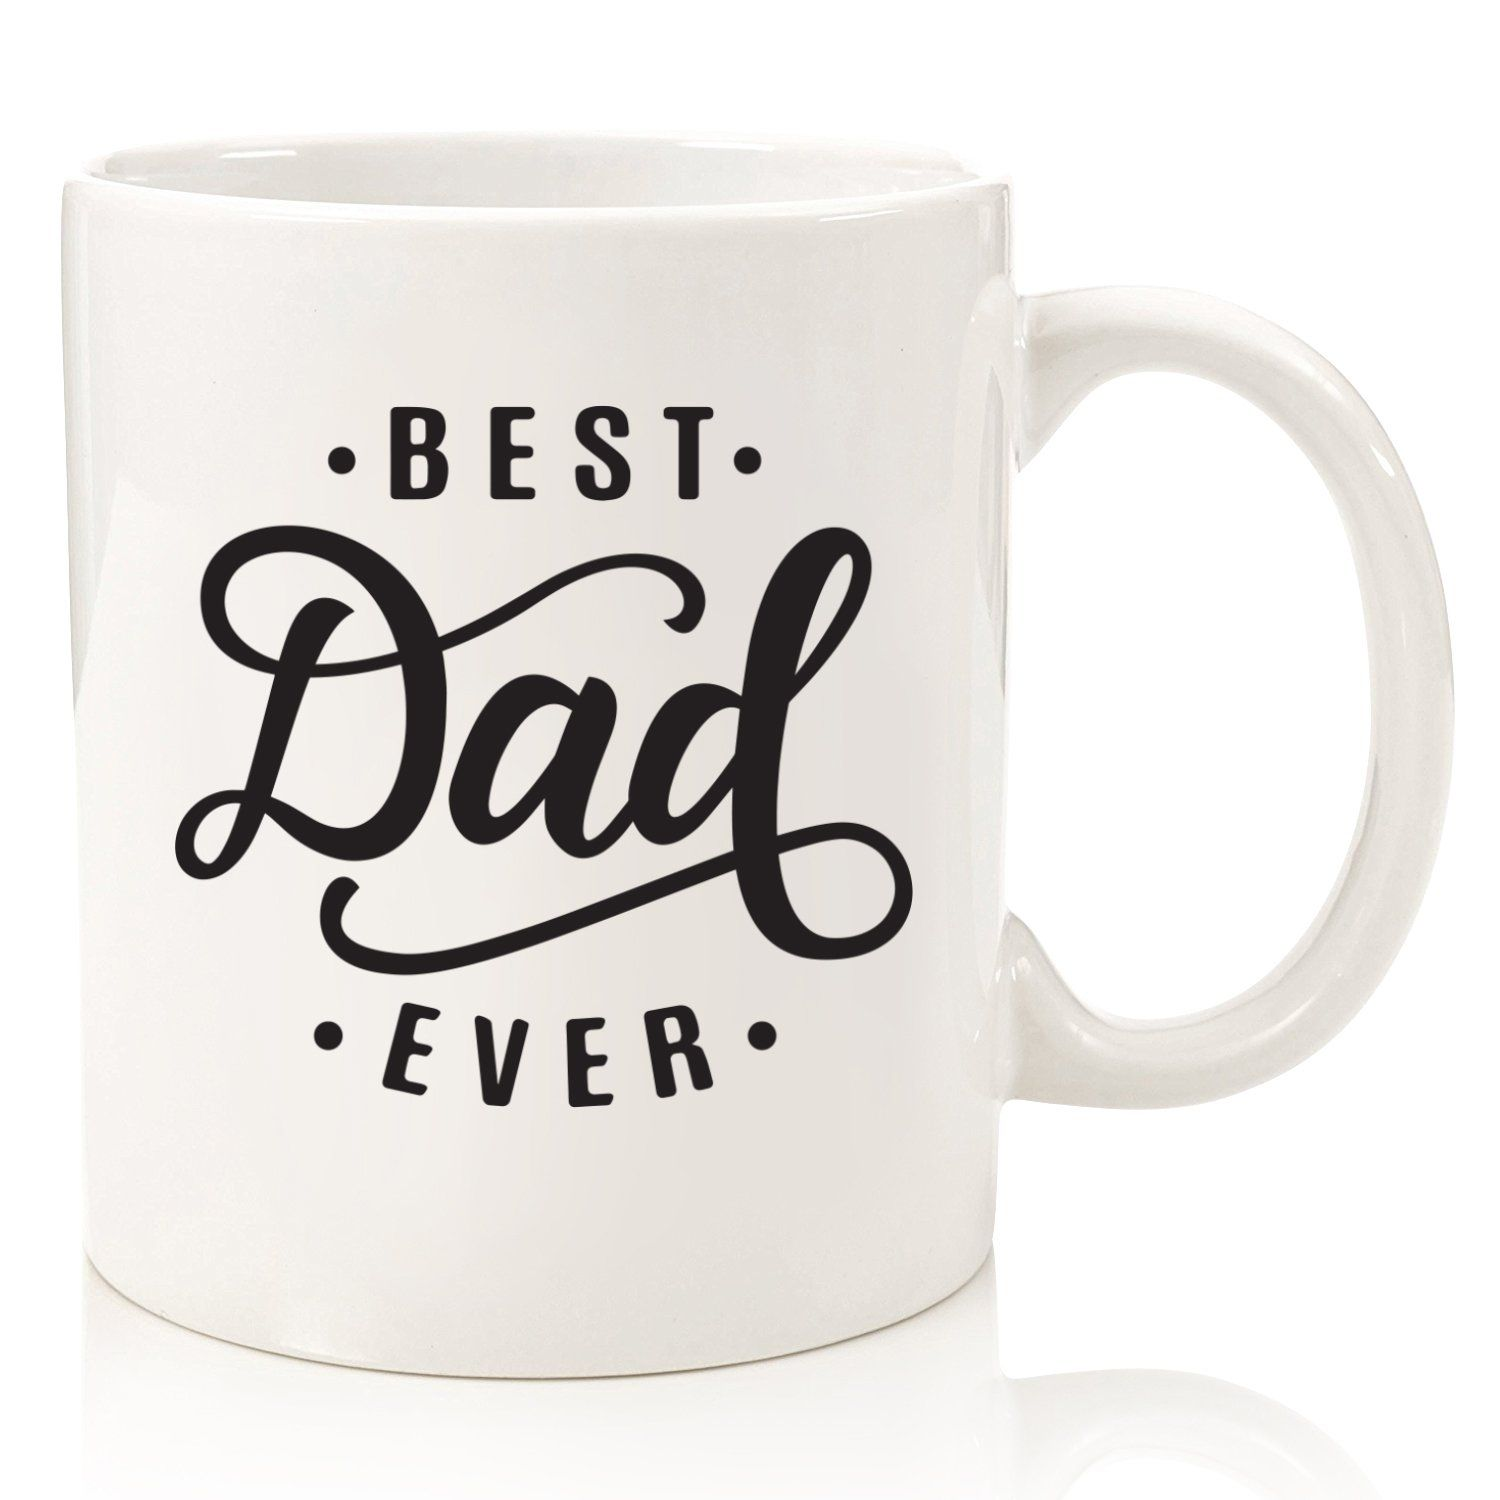 Best dad ever coffee mug top christmas gifts for dads